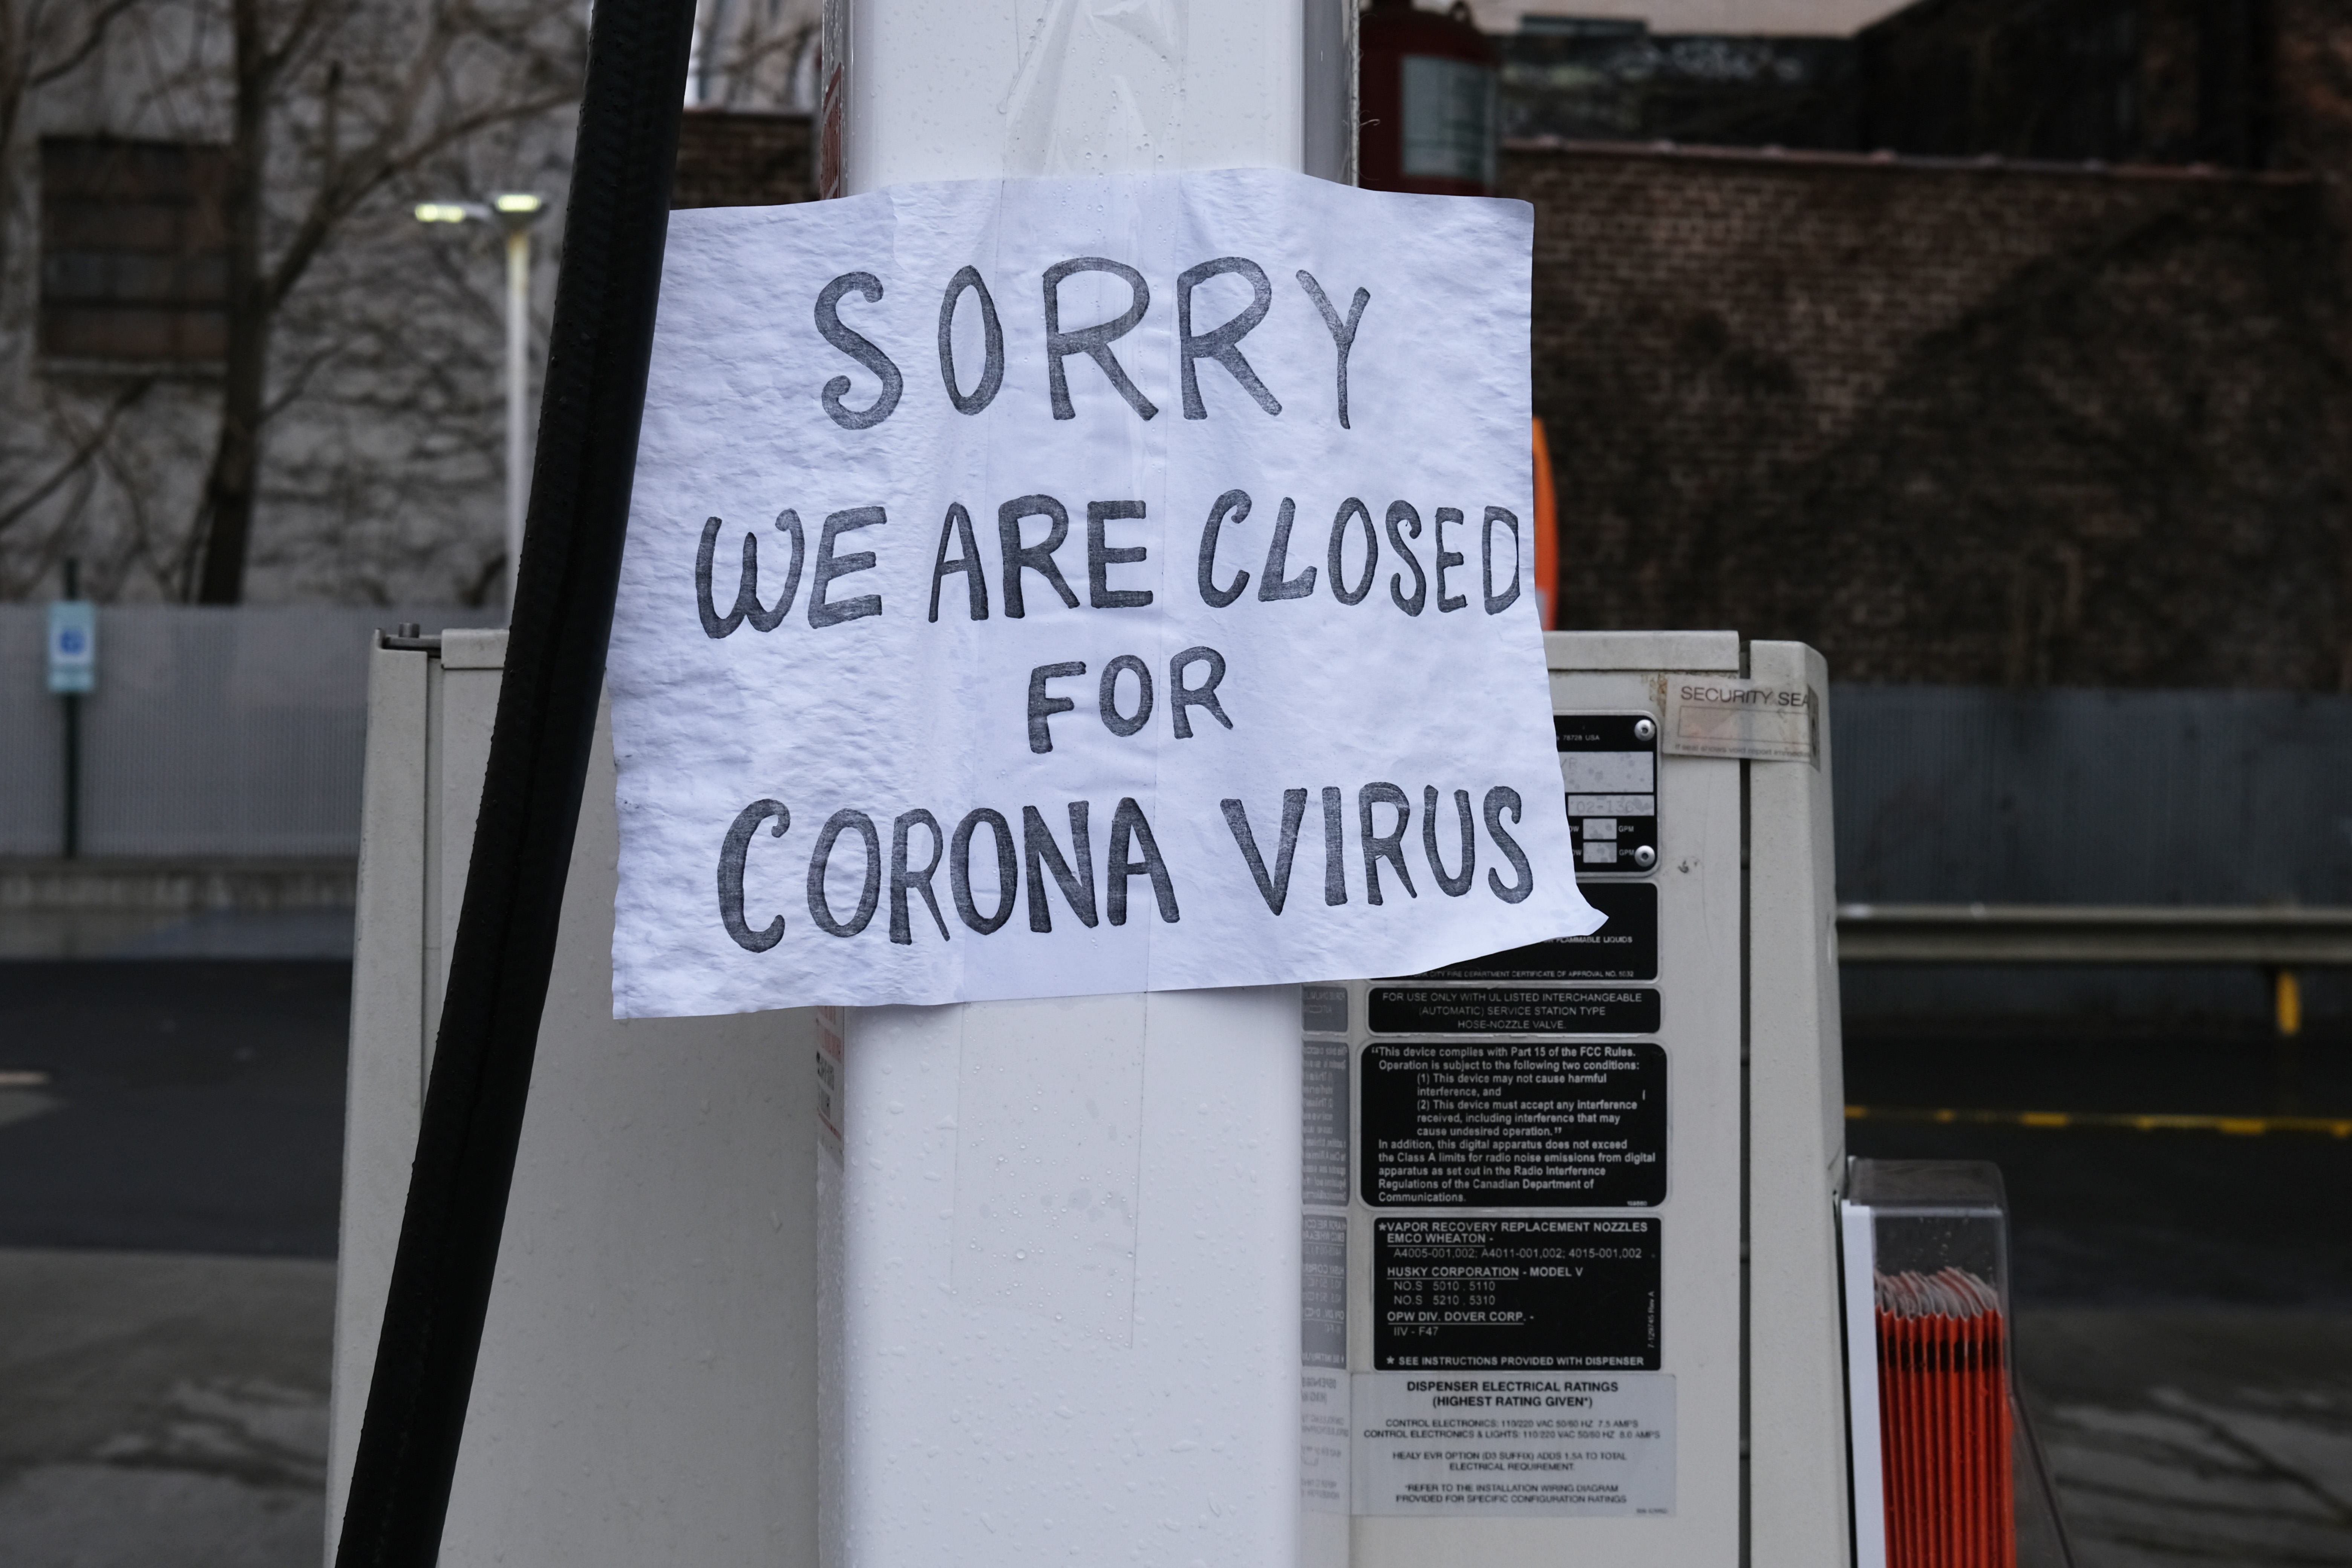 A sign at a gas station alerts customers that a business in Queens, which has one of the highest infection rates of coronavirus in the nation, is closed on April 03, 2020 in New York City. Hospitals in New York City, the nation's current epicenter of the COVID-19 outbreak, are facing shortages of beds, ventilators and protective equipment for medical staff. Currently, over 100, 000 New Yorkers have tested positive for COVID-19. (Photo by Spencer Platt/Getty Images)